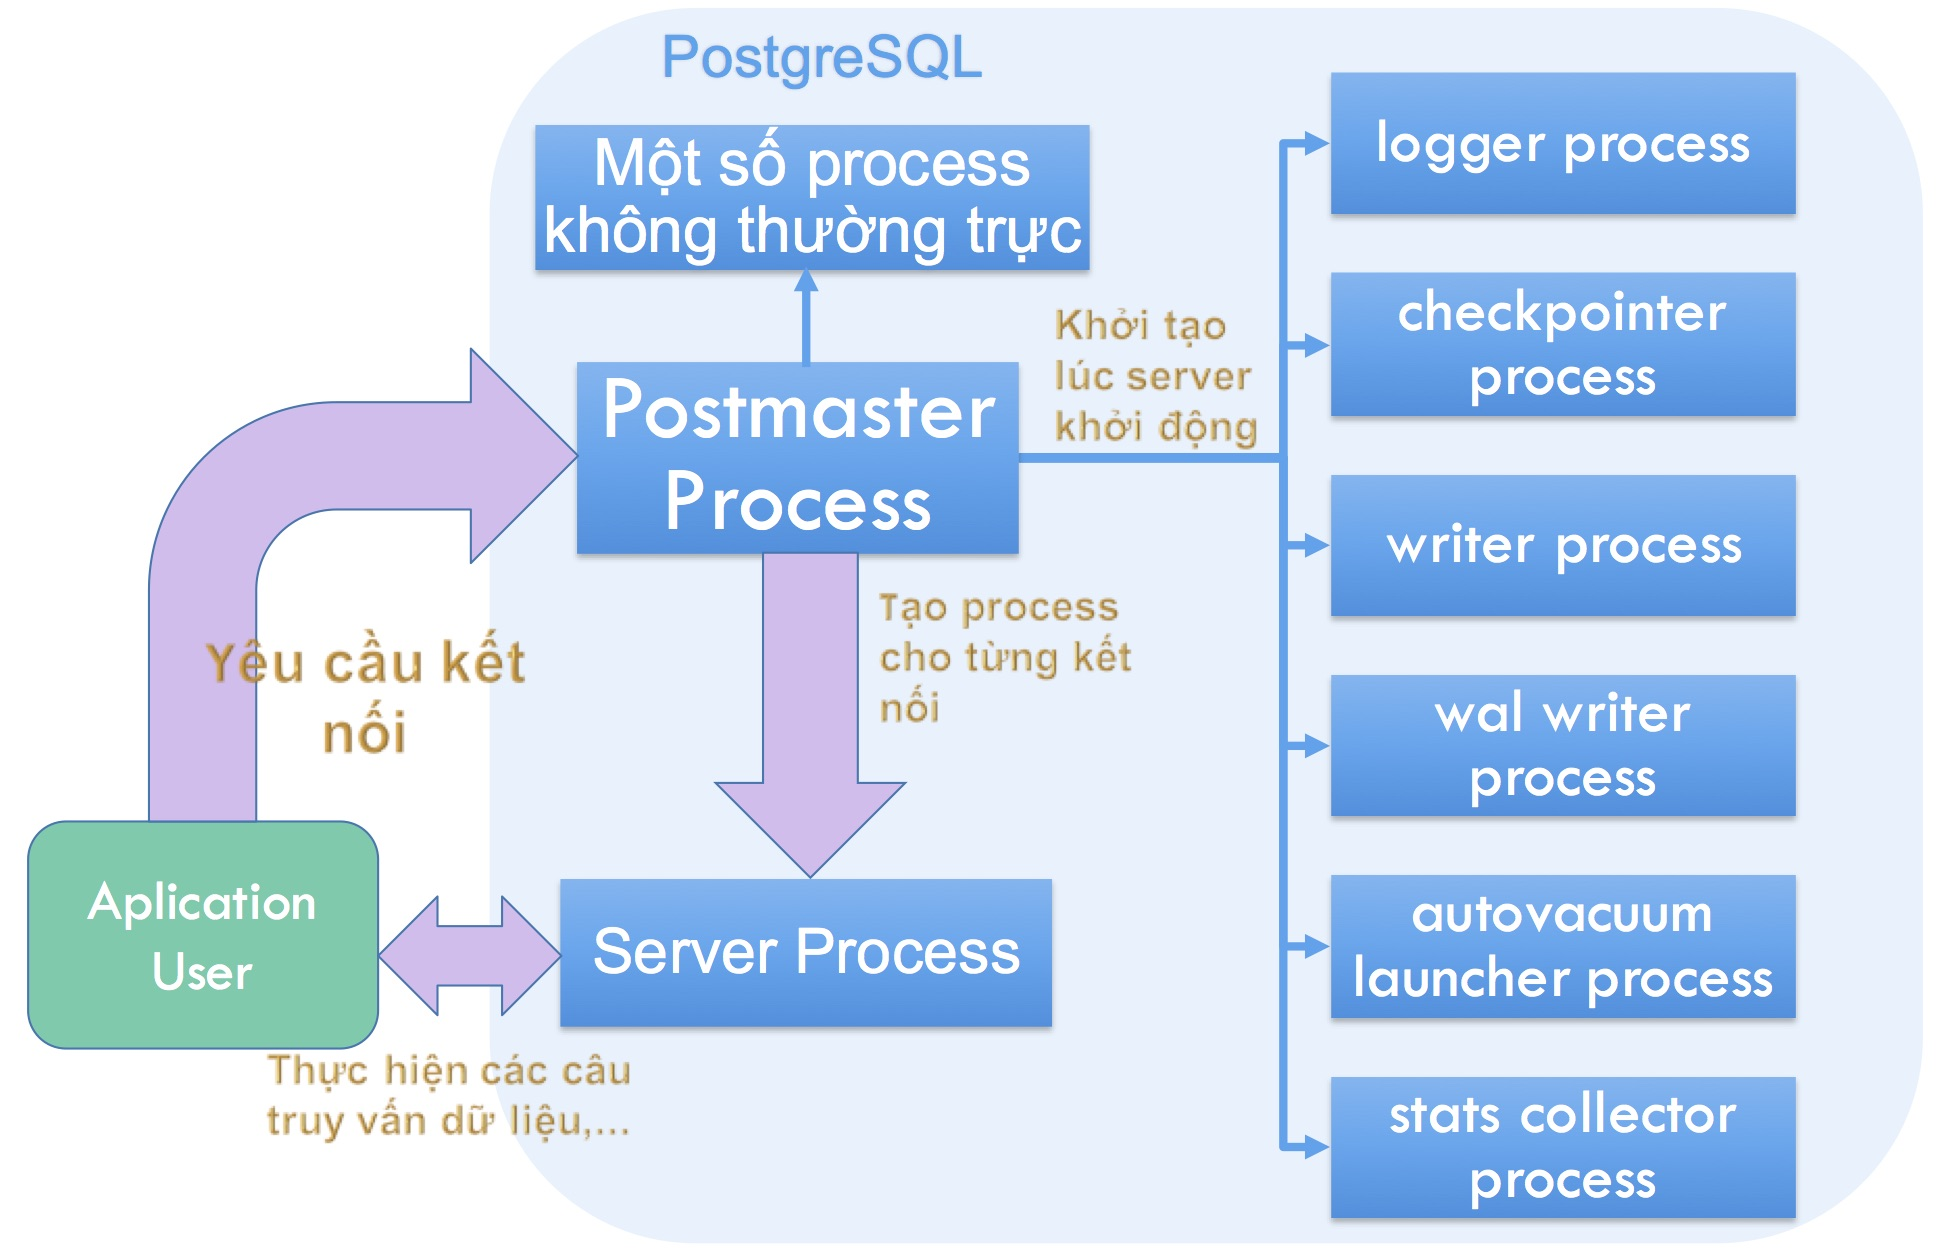 PostgreSQL processes